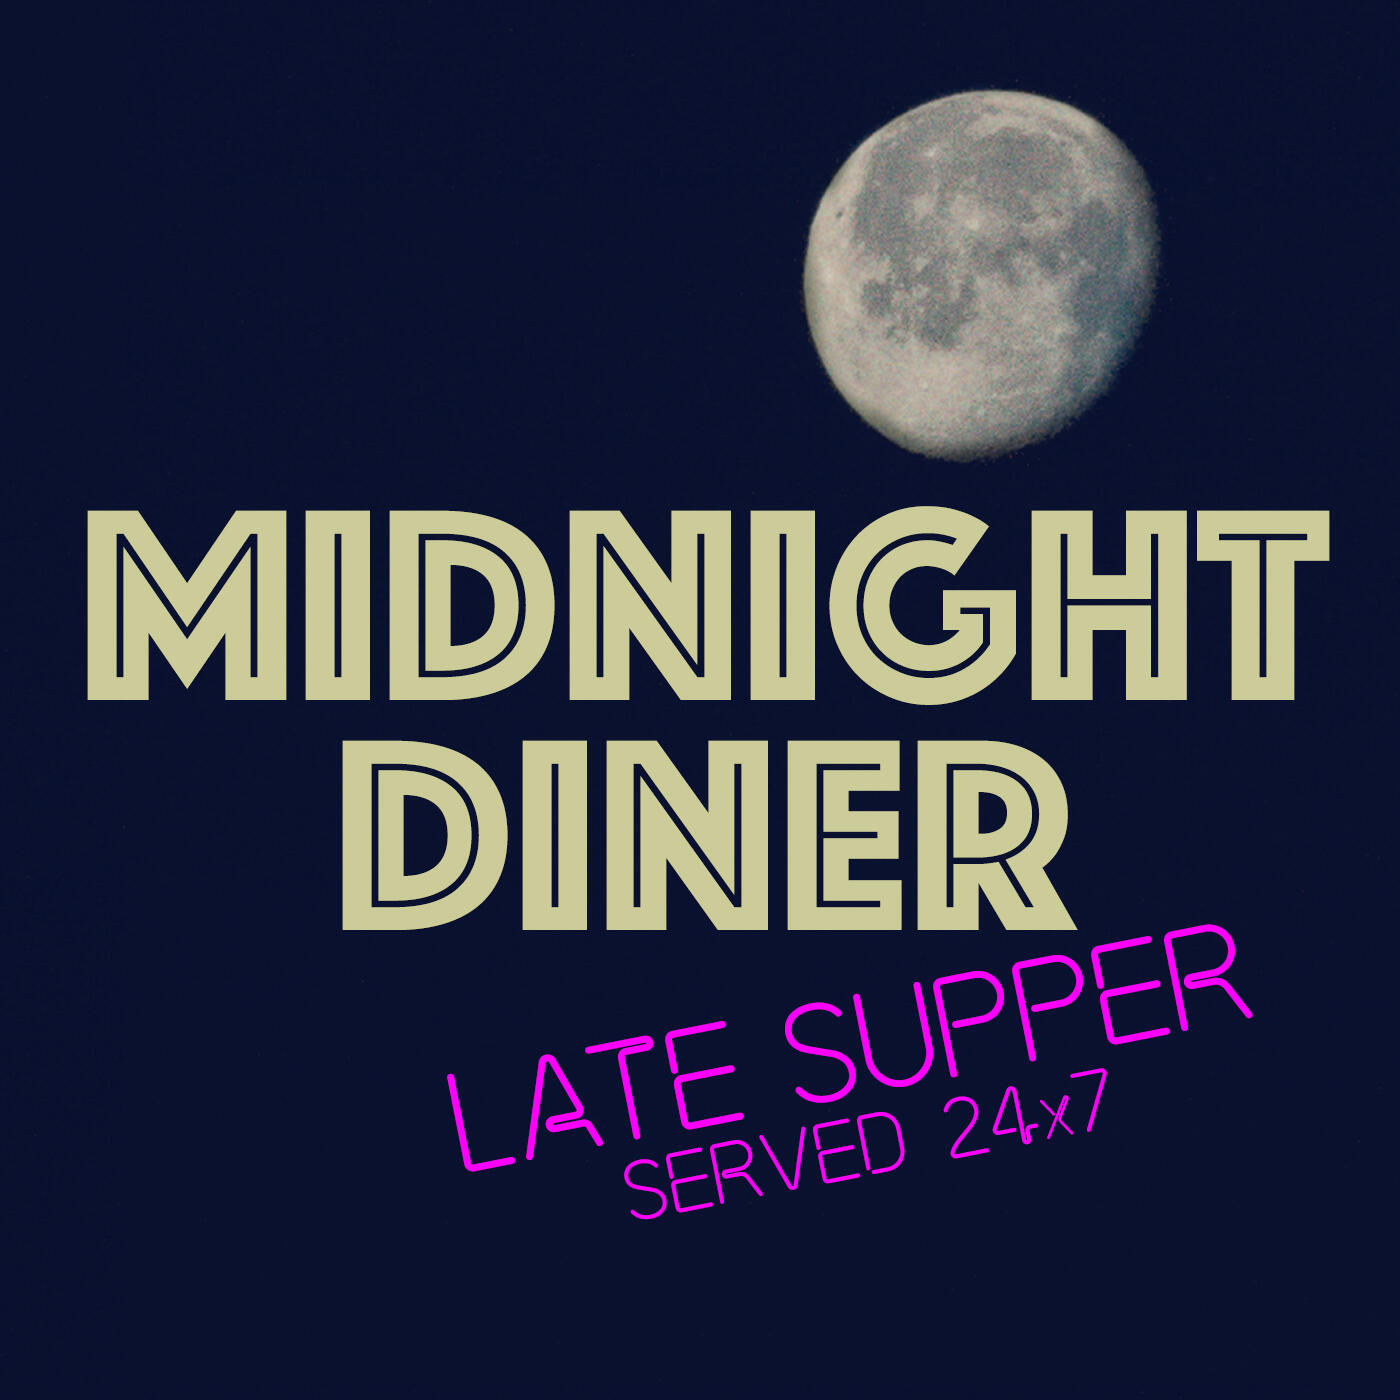 Late Supper at the Midnight Diner